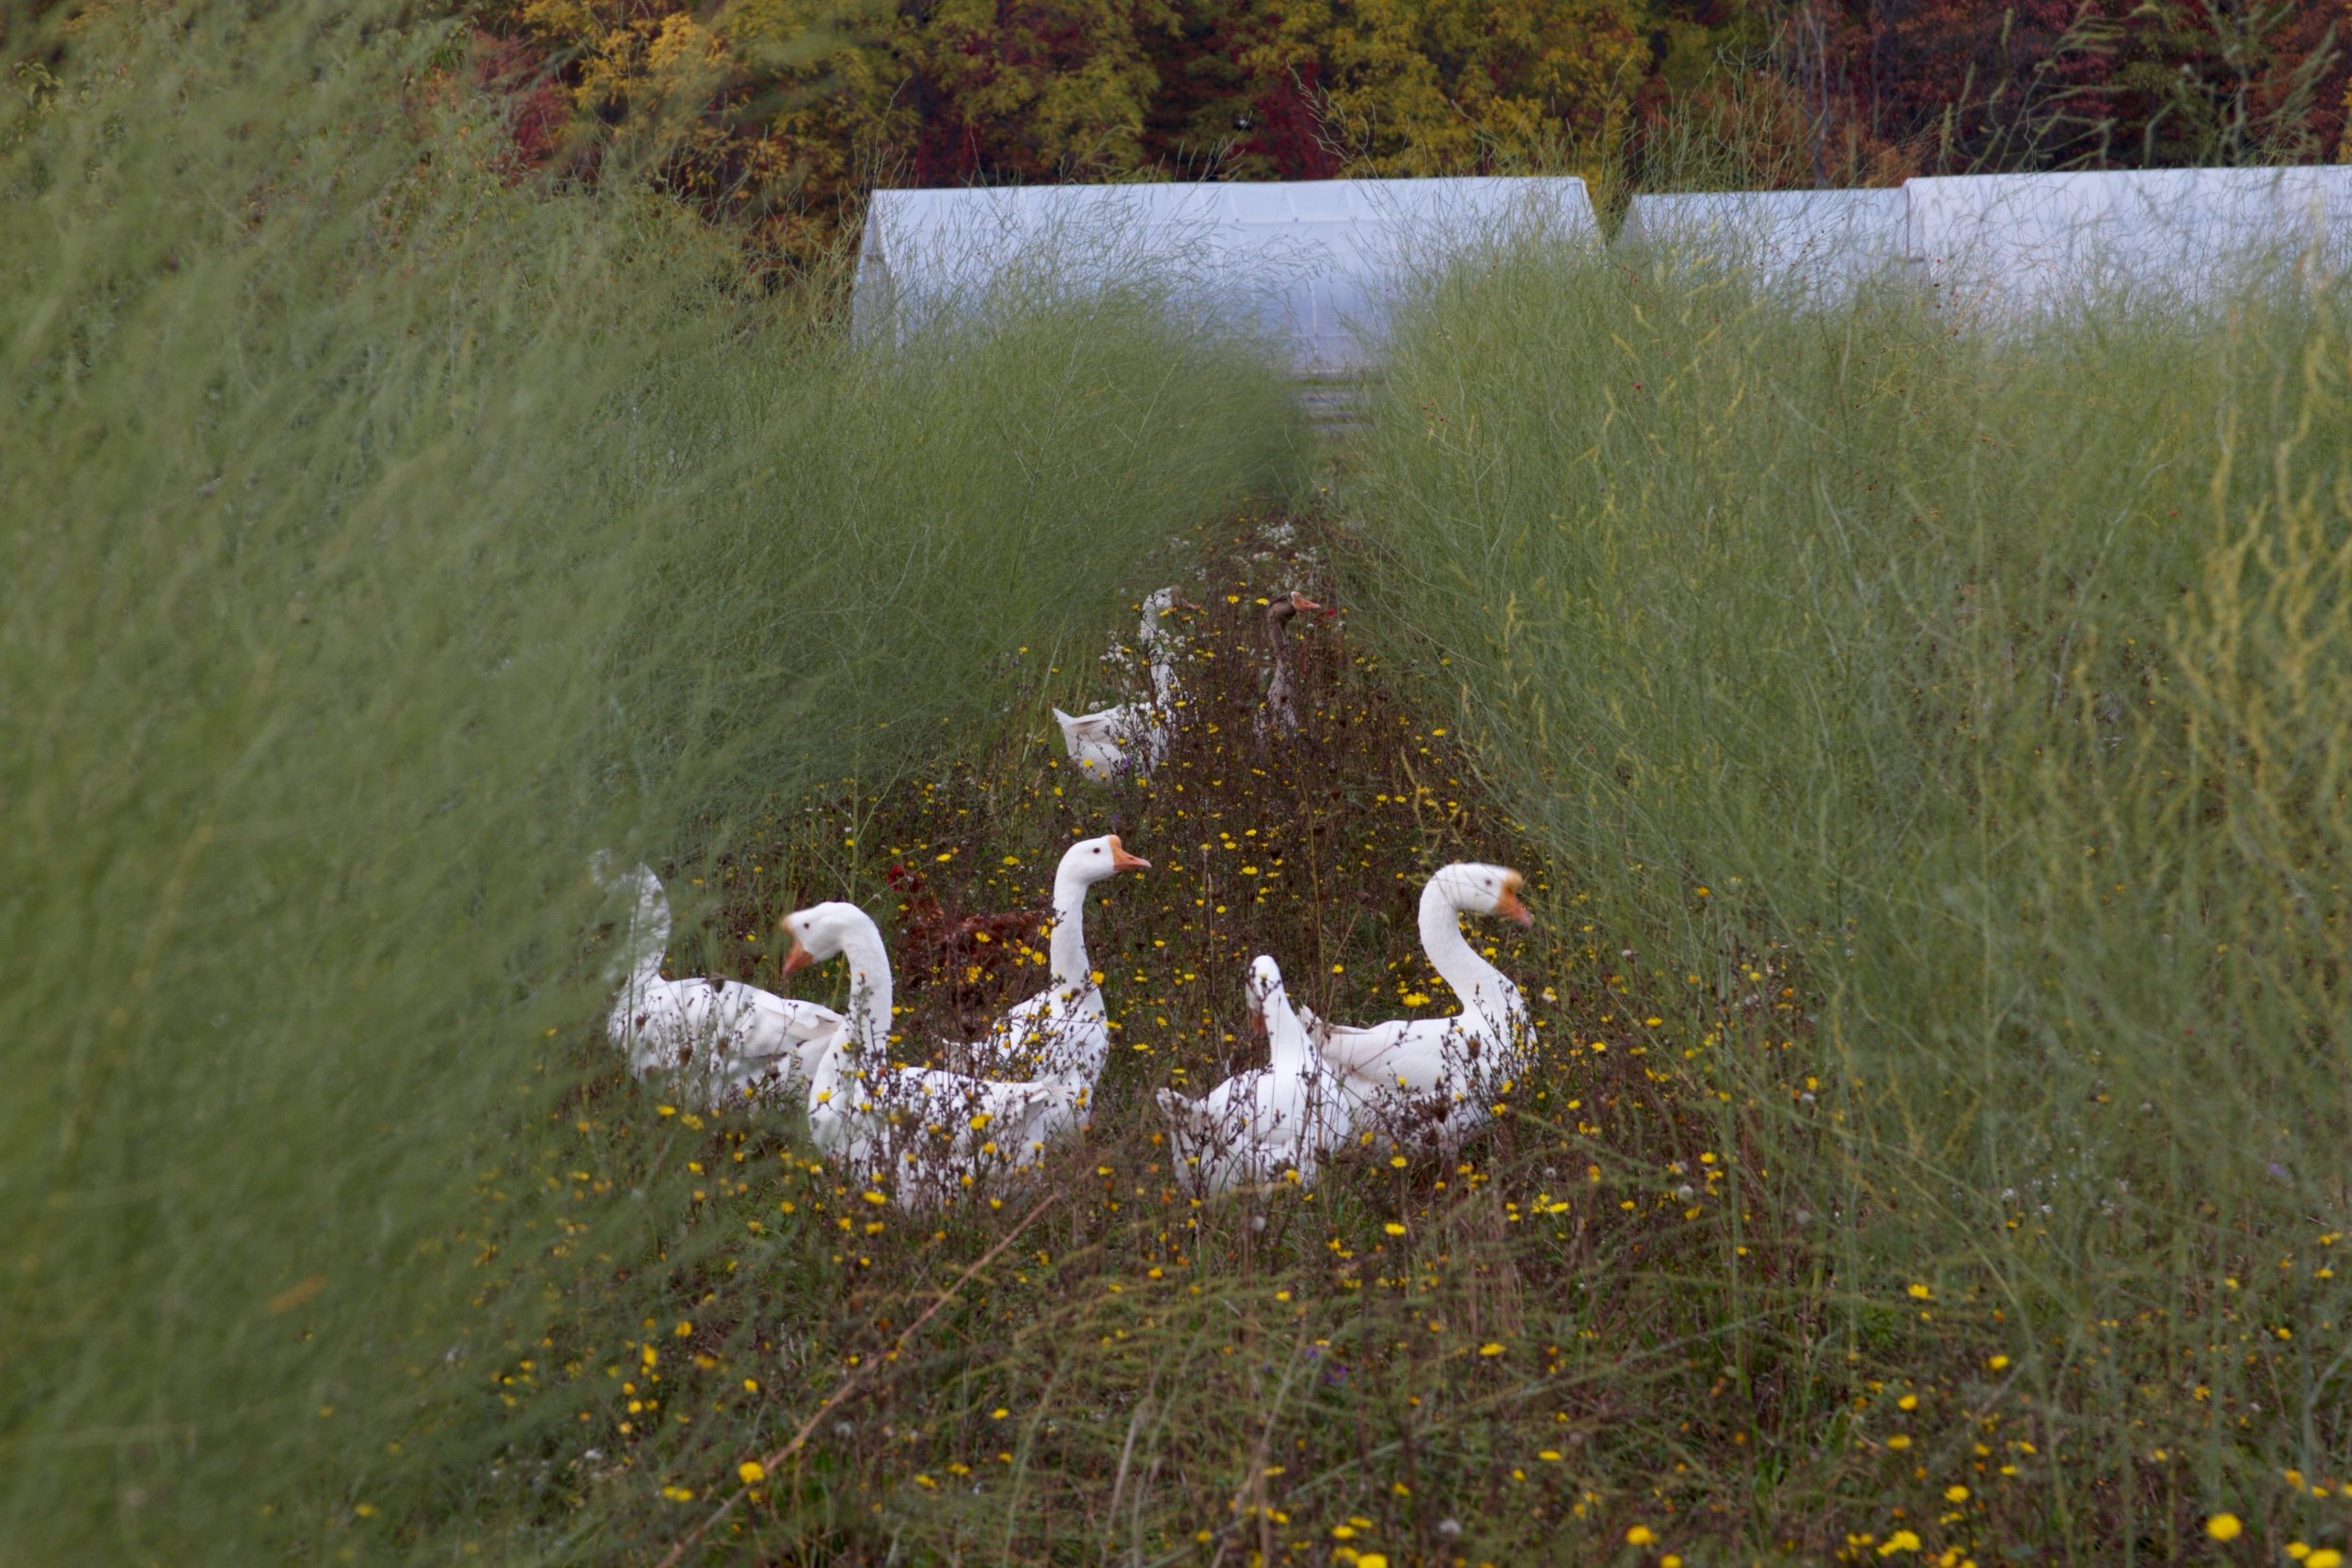 Geese graze the rows of asparagus in the off-season, keeping the weeds down and turning grass into fertilizer.